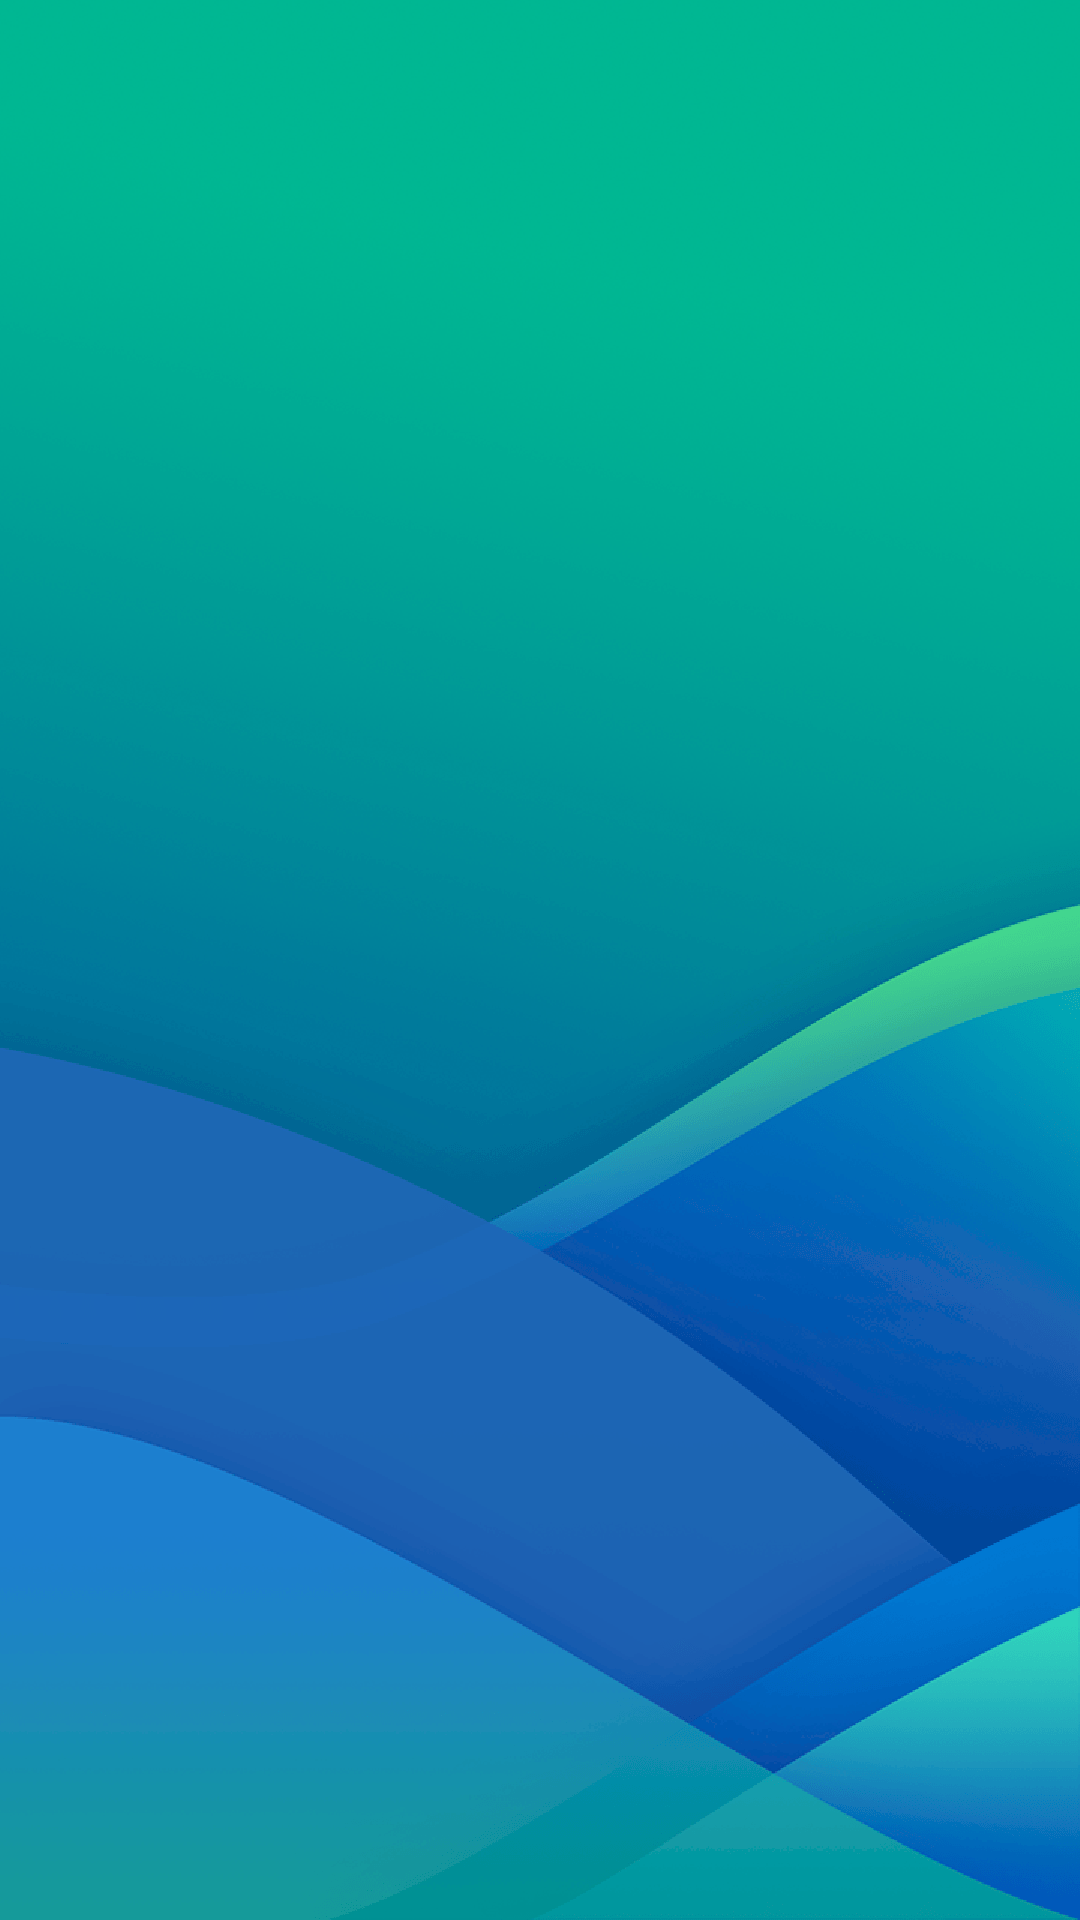 gionee s6s stock wallpapers ThemeFoxx 12 • Download Gionee S6S Stock Wallpapers